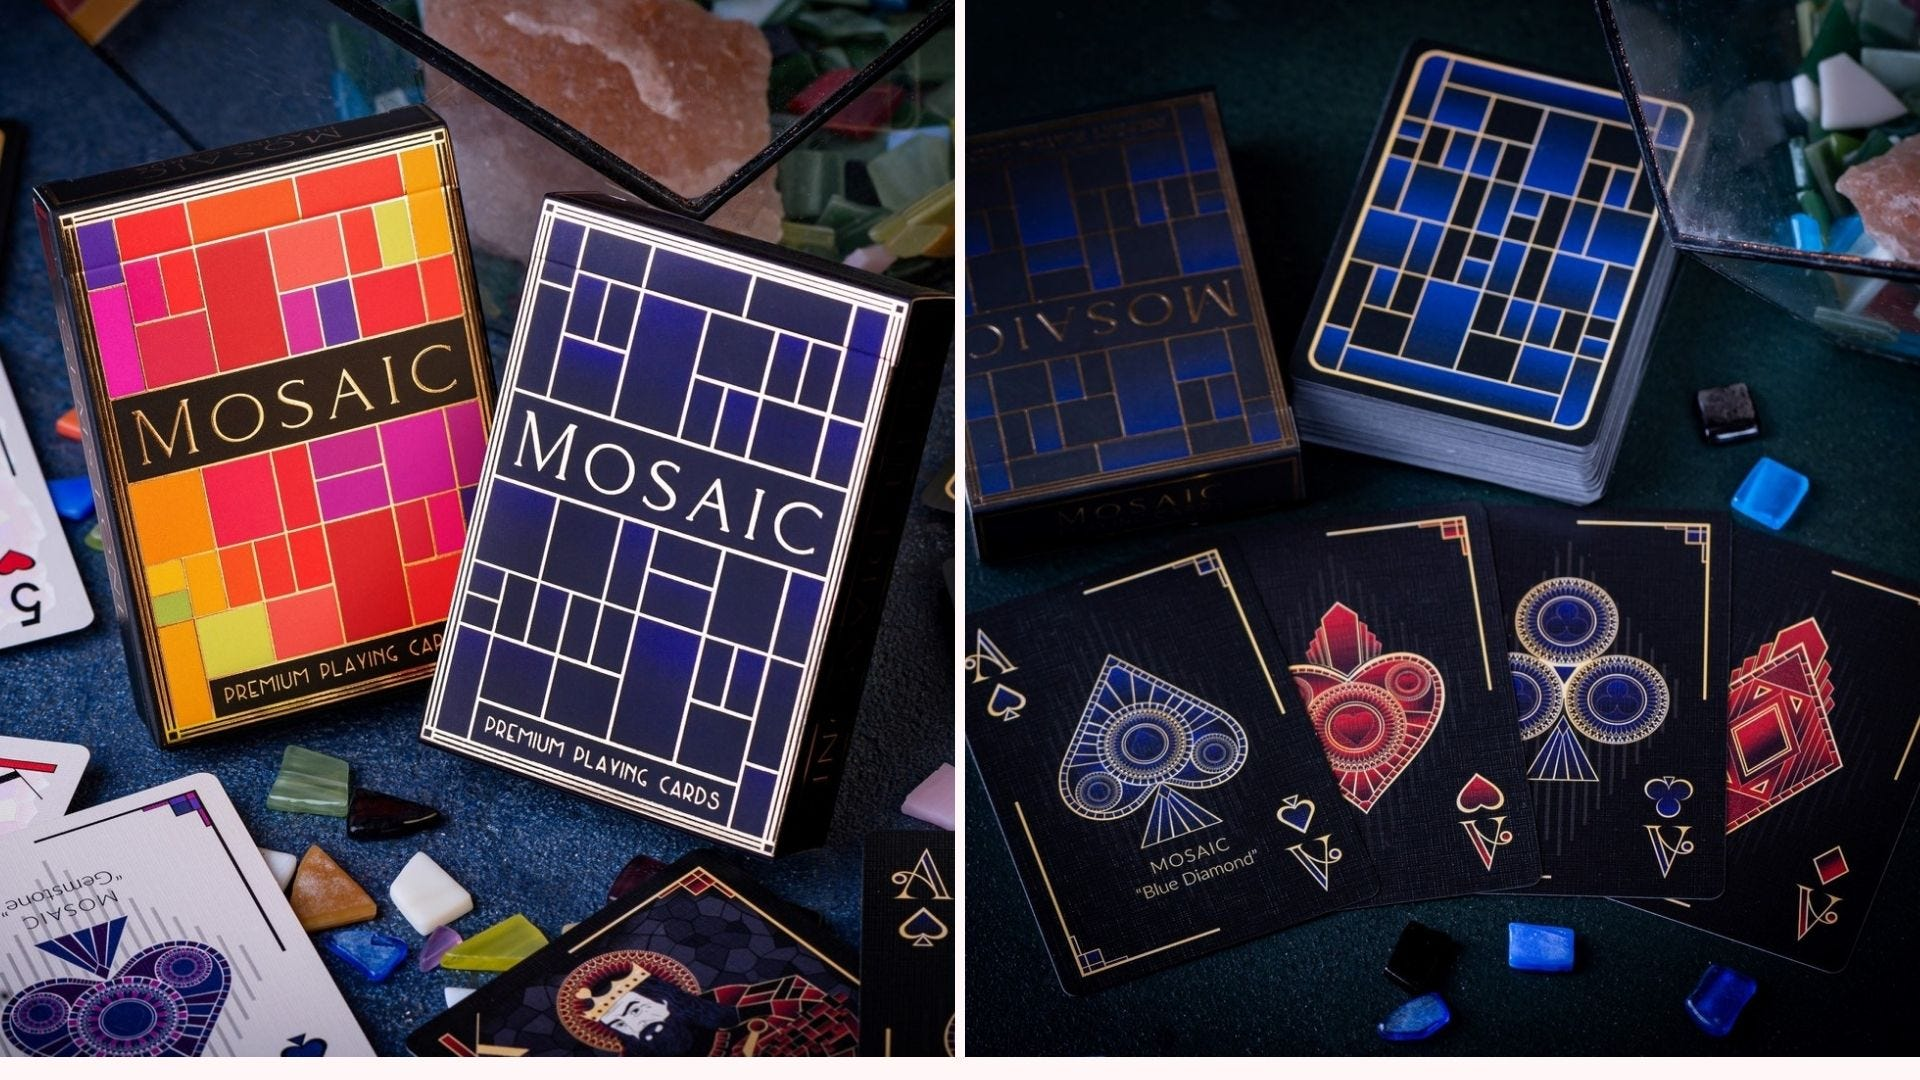 Images of the Mosaic card deck from Elephant Playing Cards.